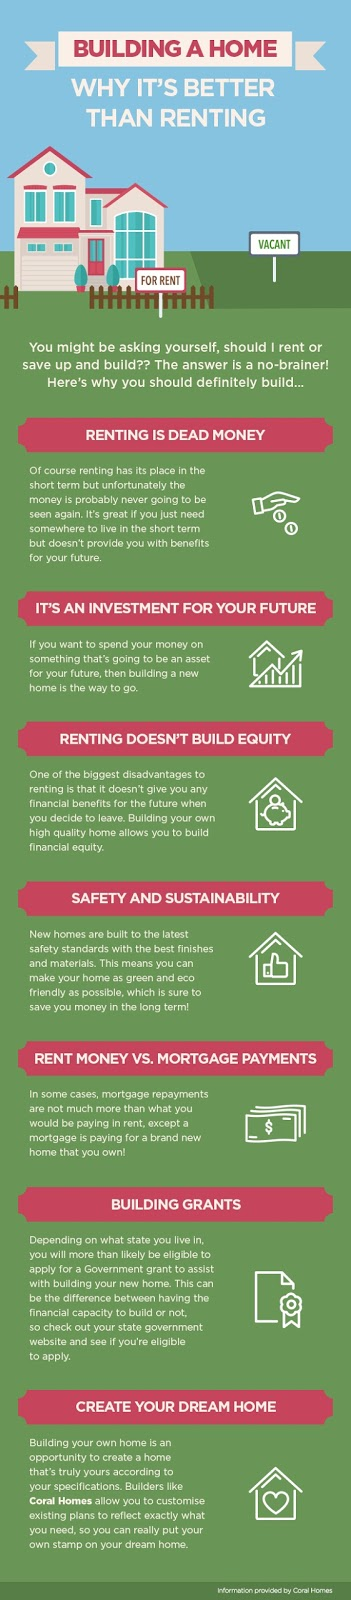 Why It's Better than Renting, An Infographic